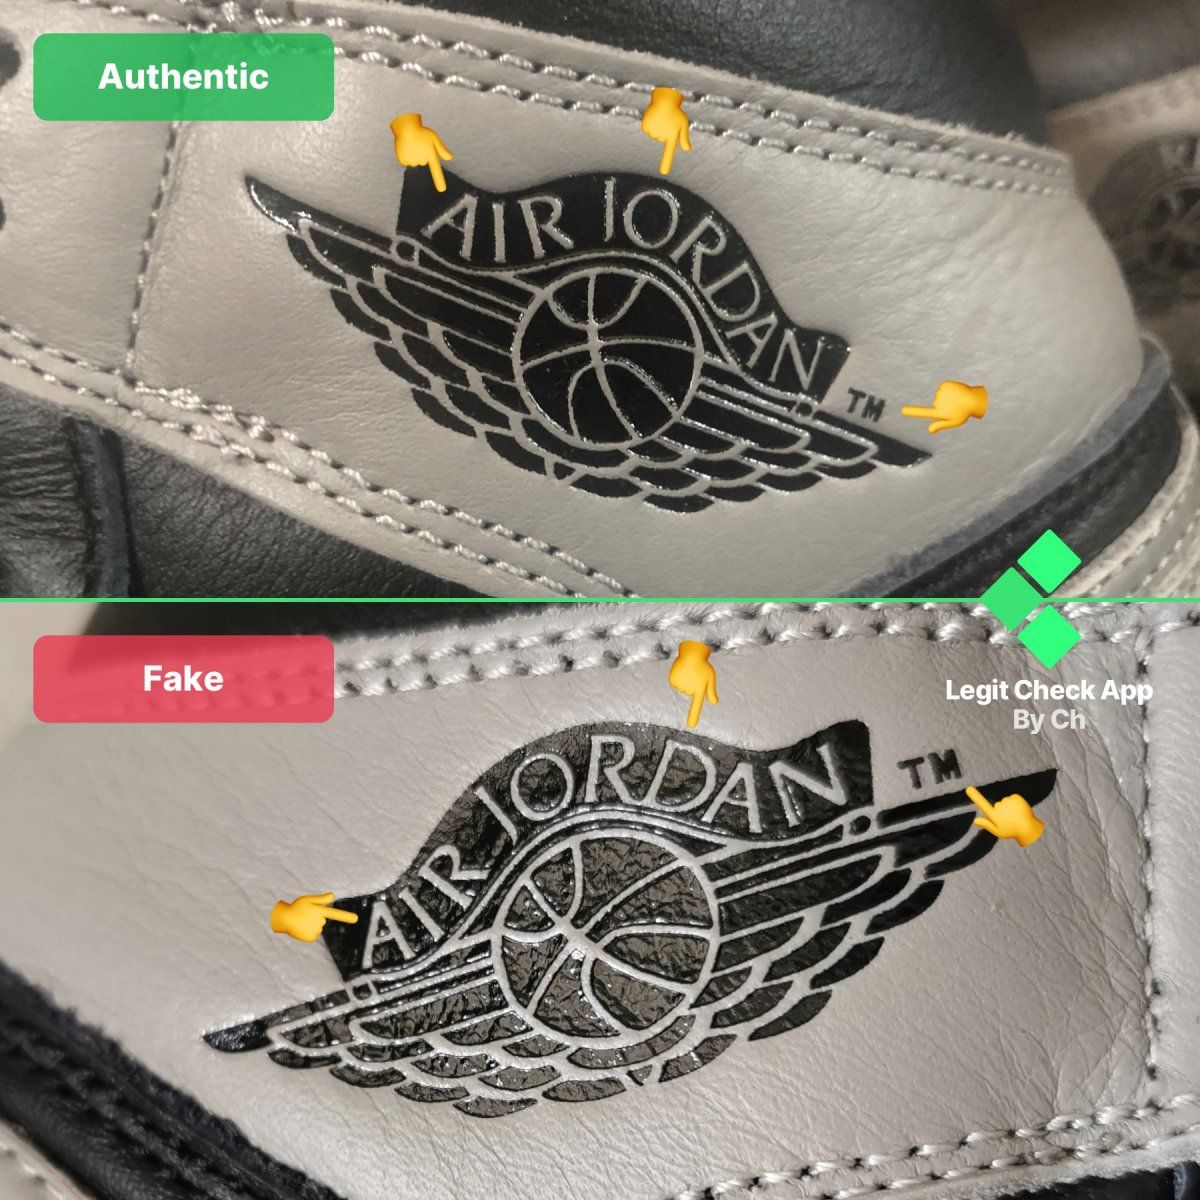 Step 3 Analyze the Air Jordan logo's lettering on your